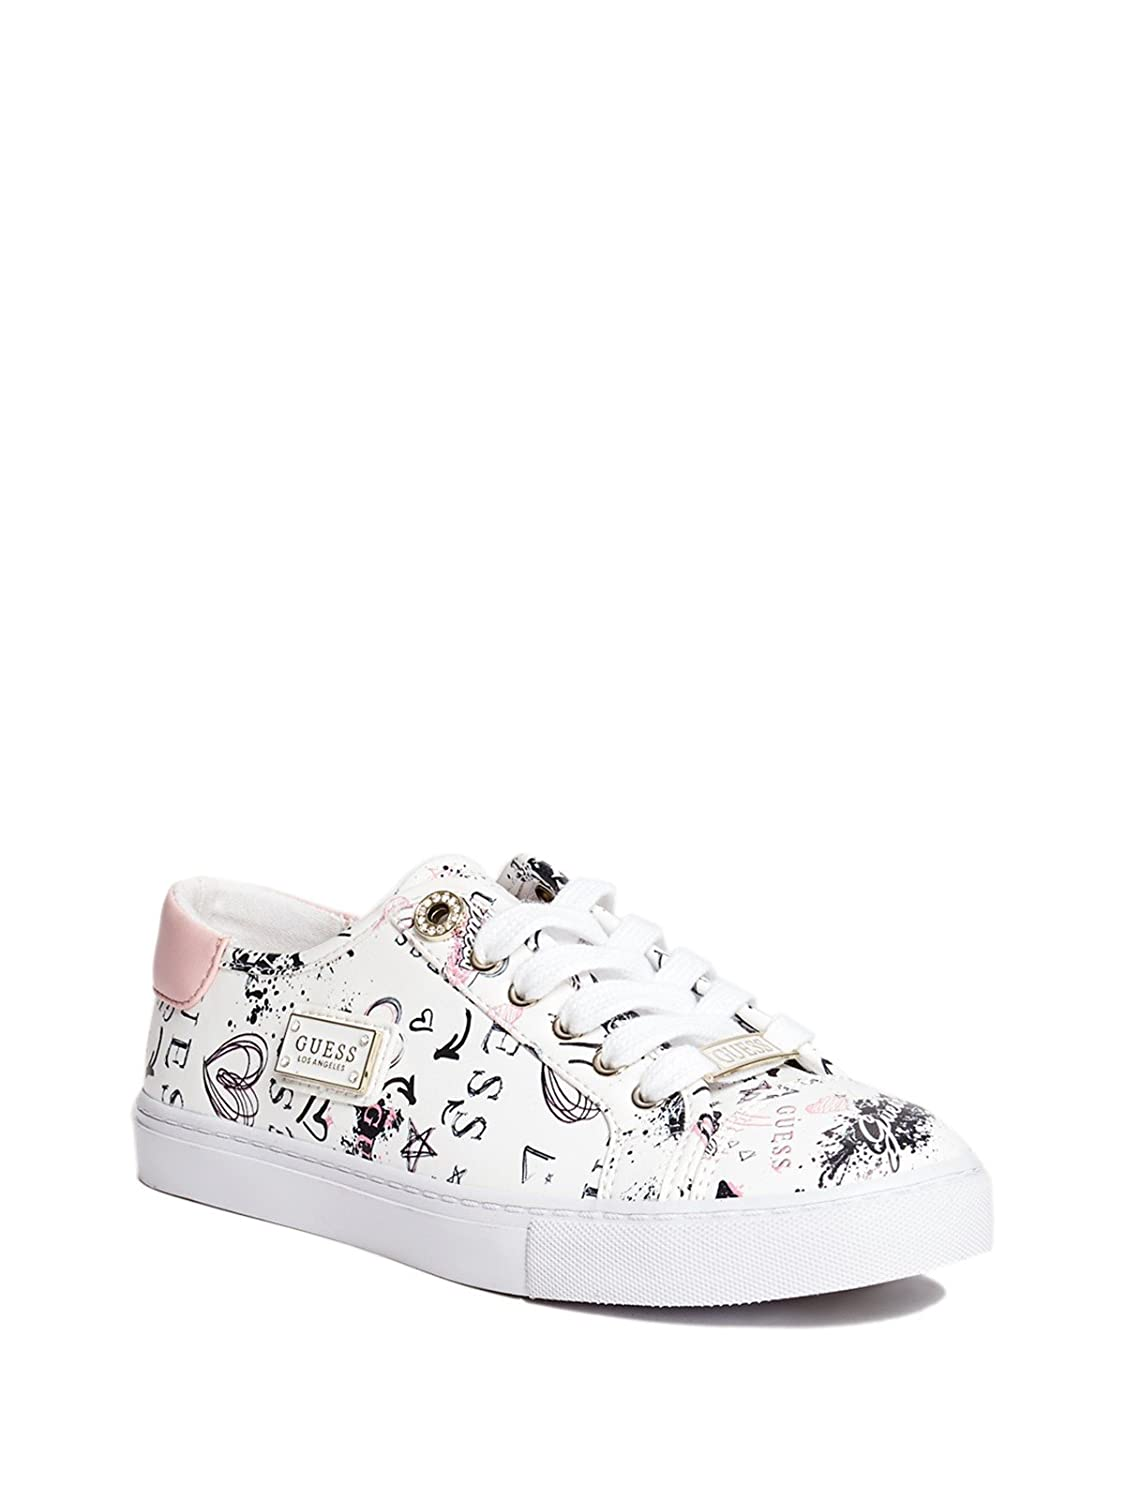 GUESS Factory Women's Greatly Printed Sneakers B07BJHDB4F 7 B(M) US|White Multi Leather